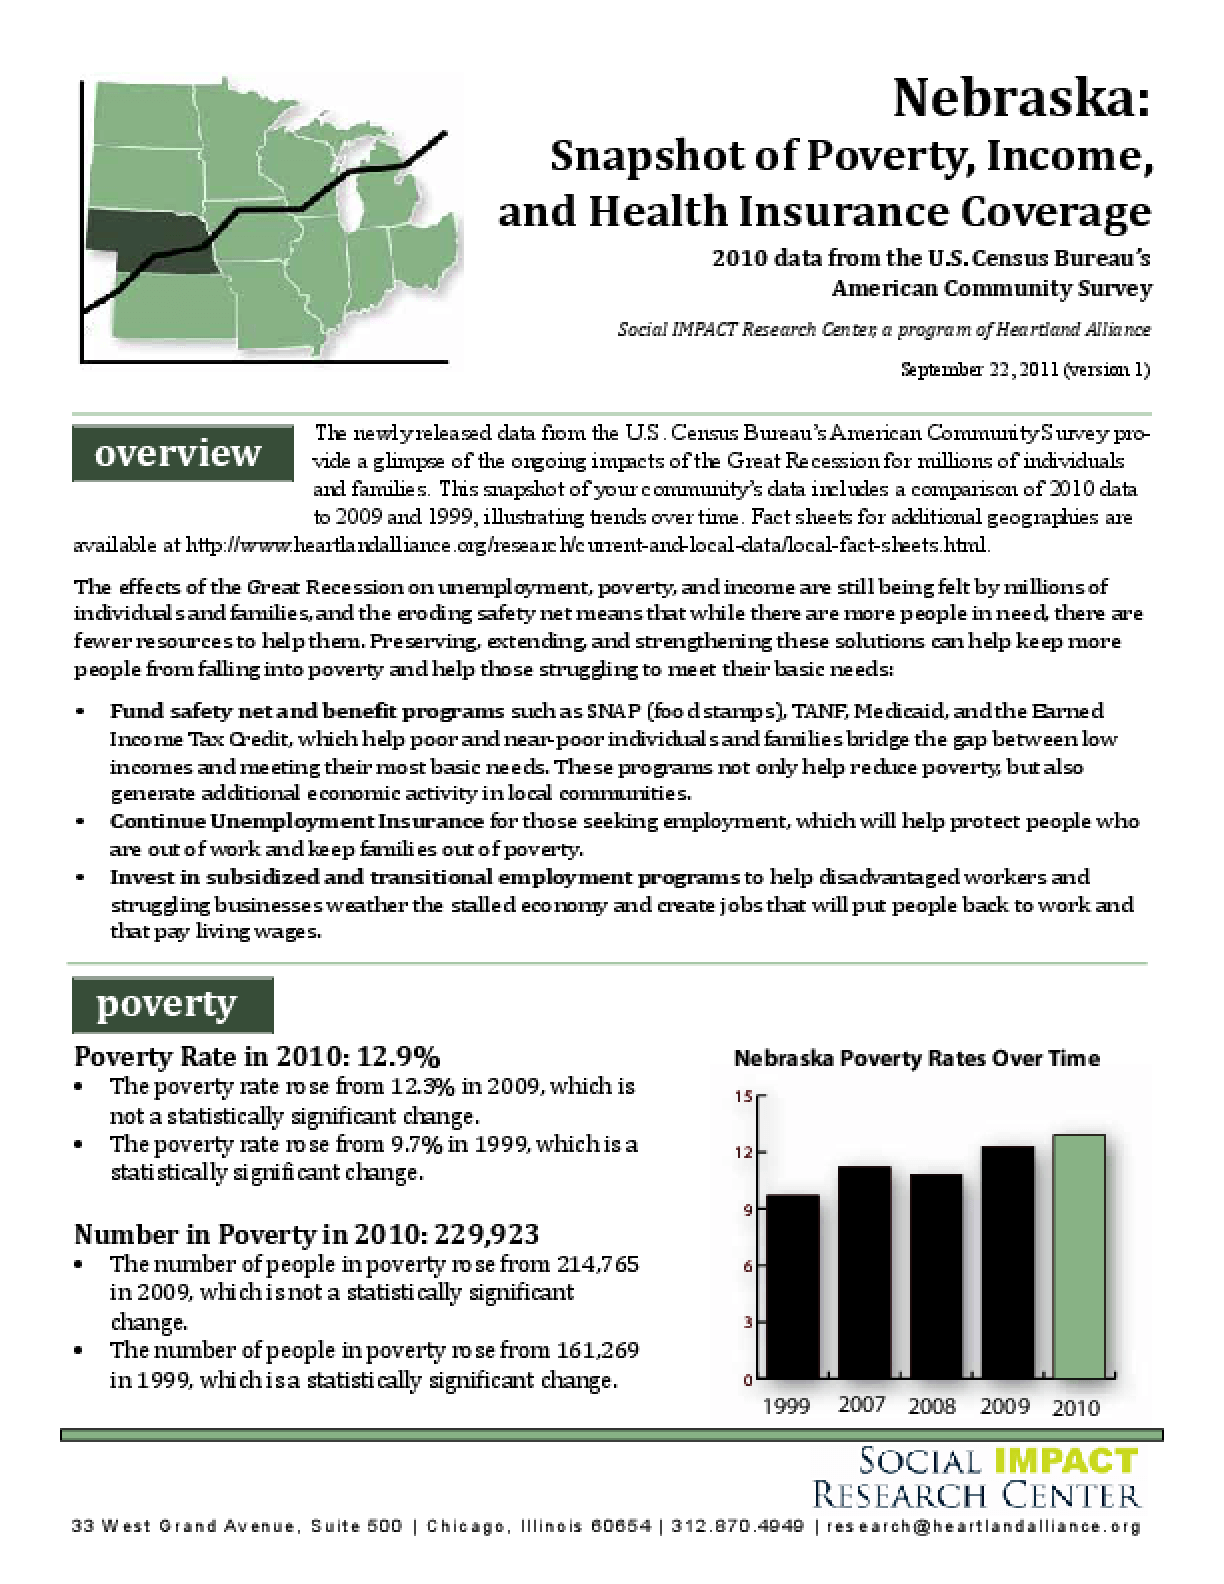 Nebraska: Snapshot of Poverty, Income, and Health Insurance Coverage